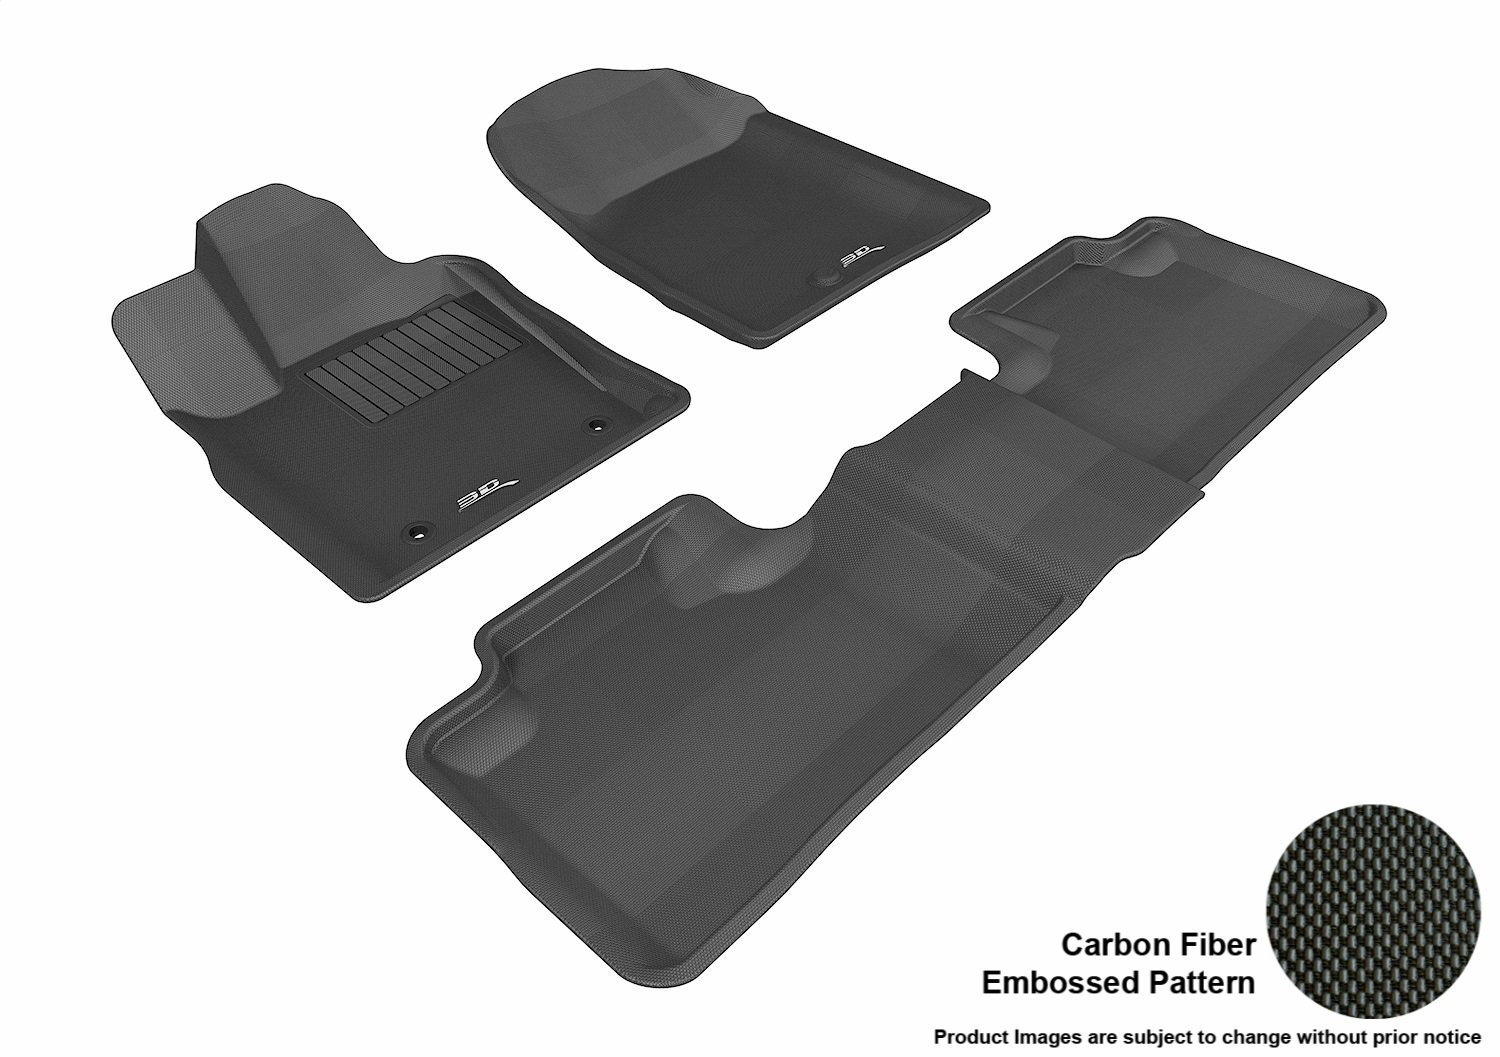 L1DG00601509 Kagu Rubber Black 3D MAXpider Complete Set Custom Fit All-Weather Floor Mat for Select Dodge Durango Models